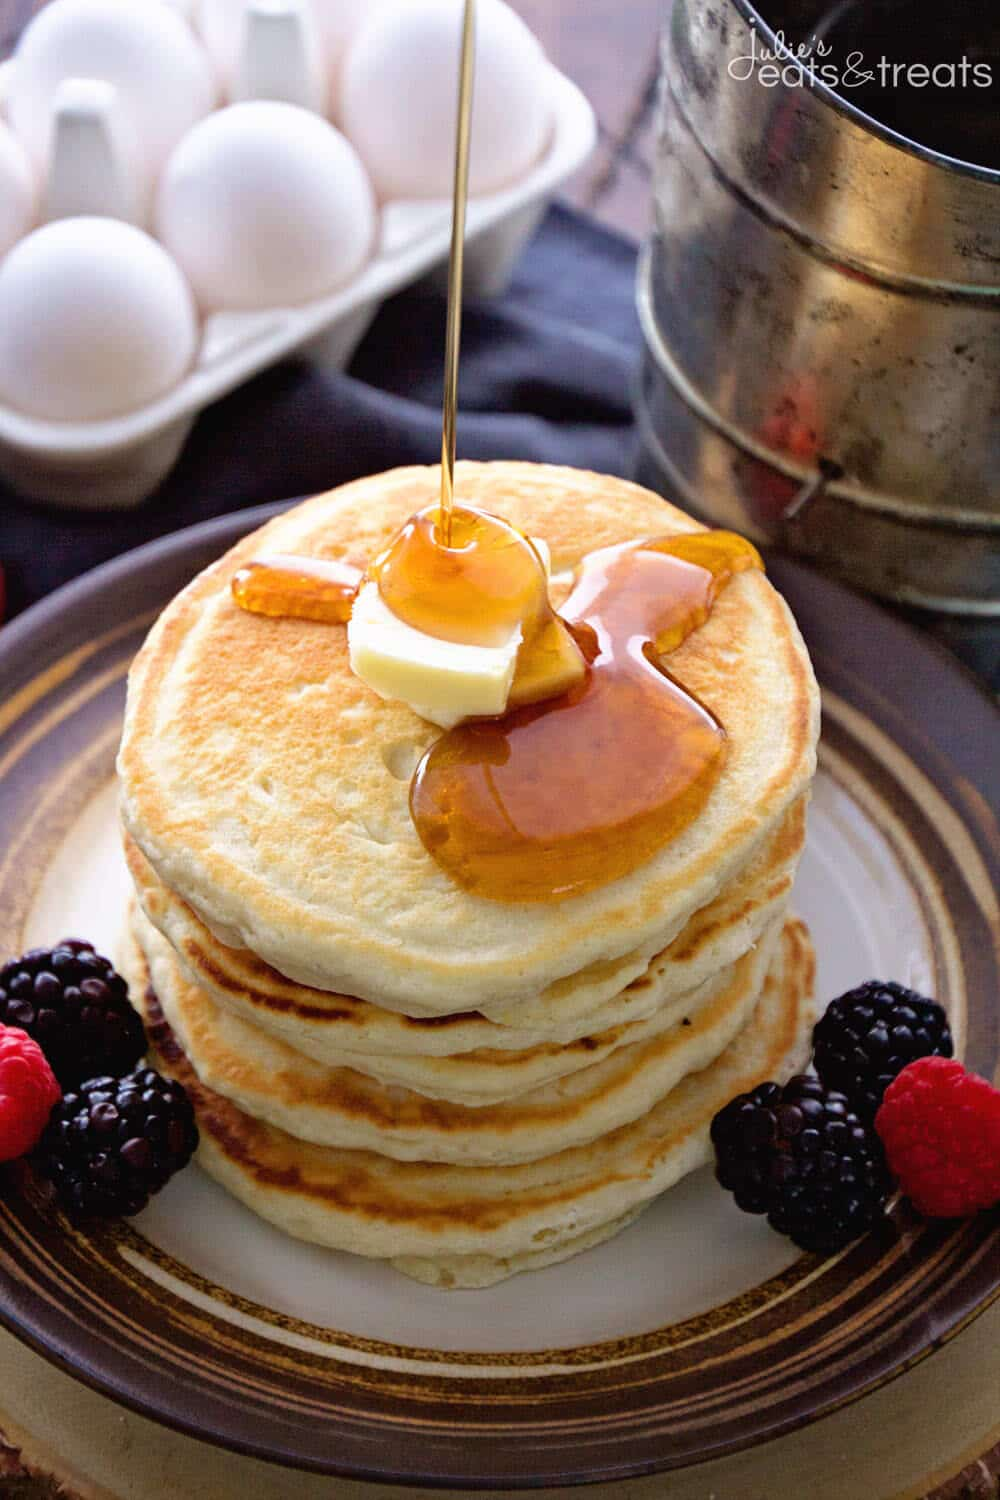 How Do You Make Pancakes Light And Fluffy